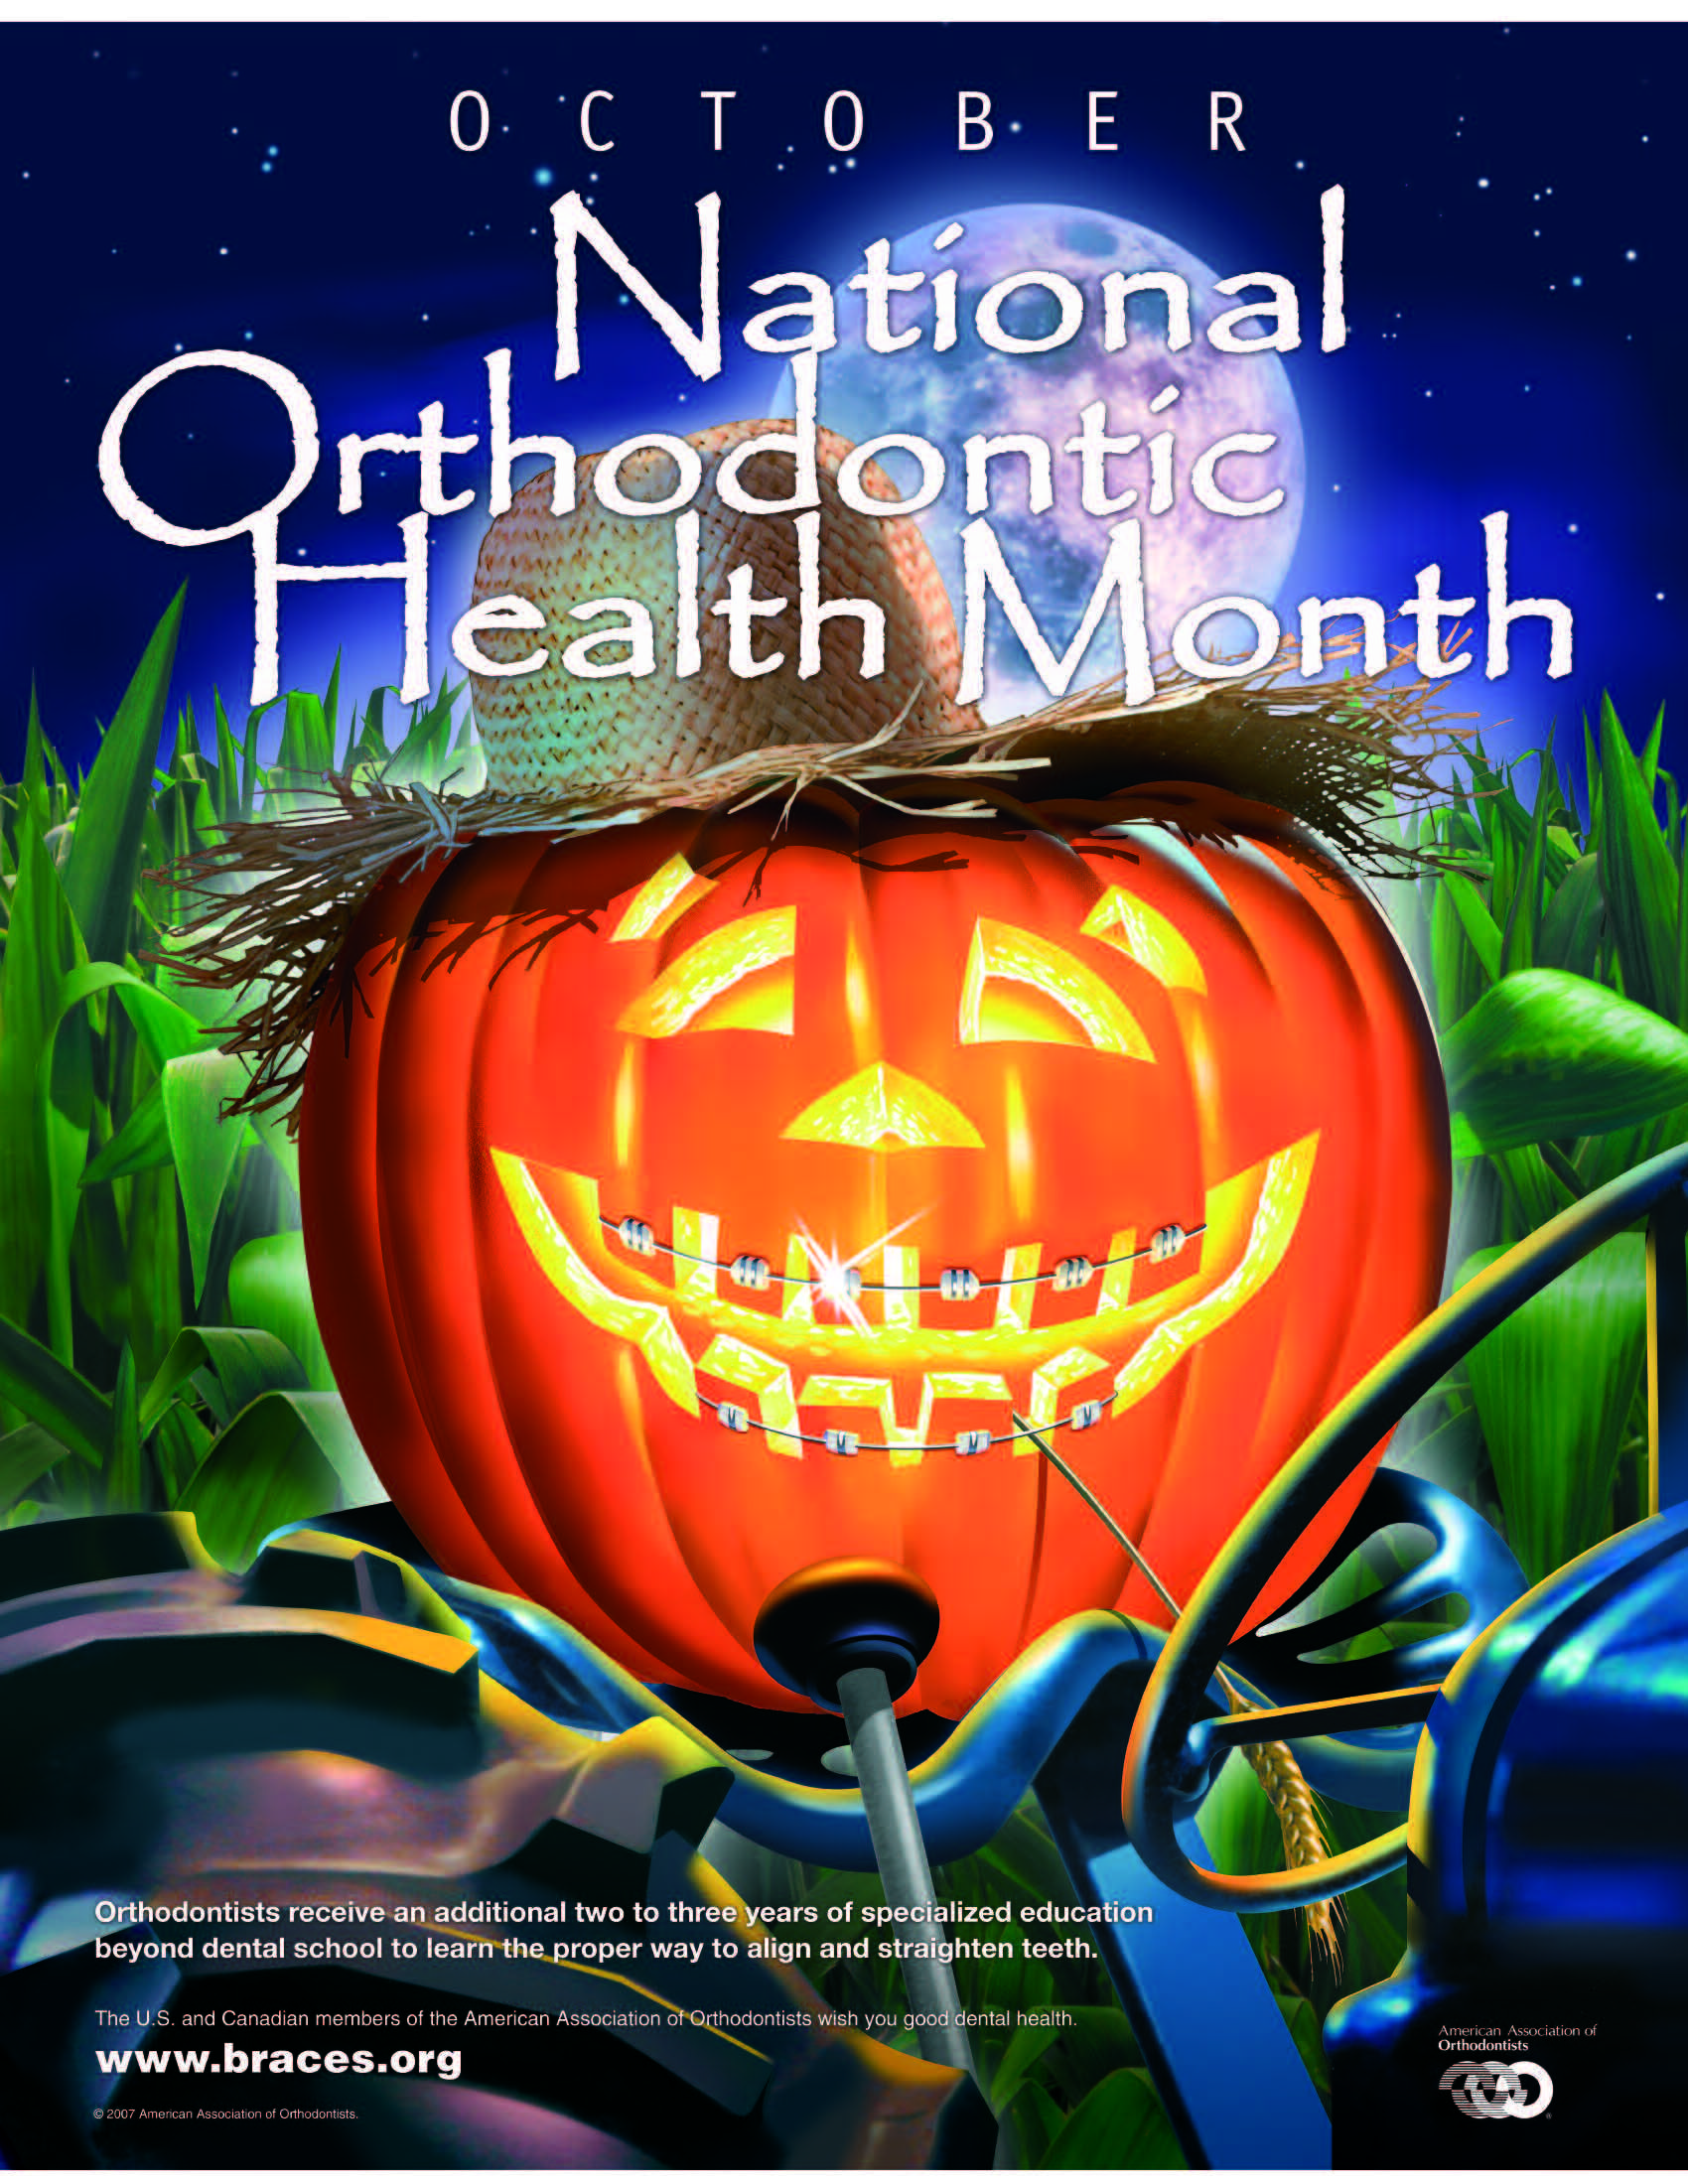 National Orthodontic Health Month Orthodontic Health Month